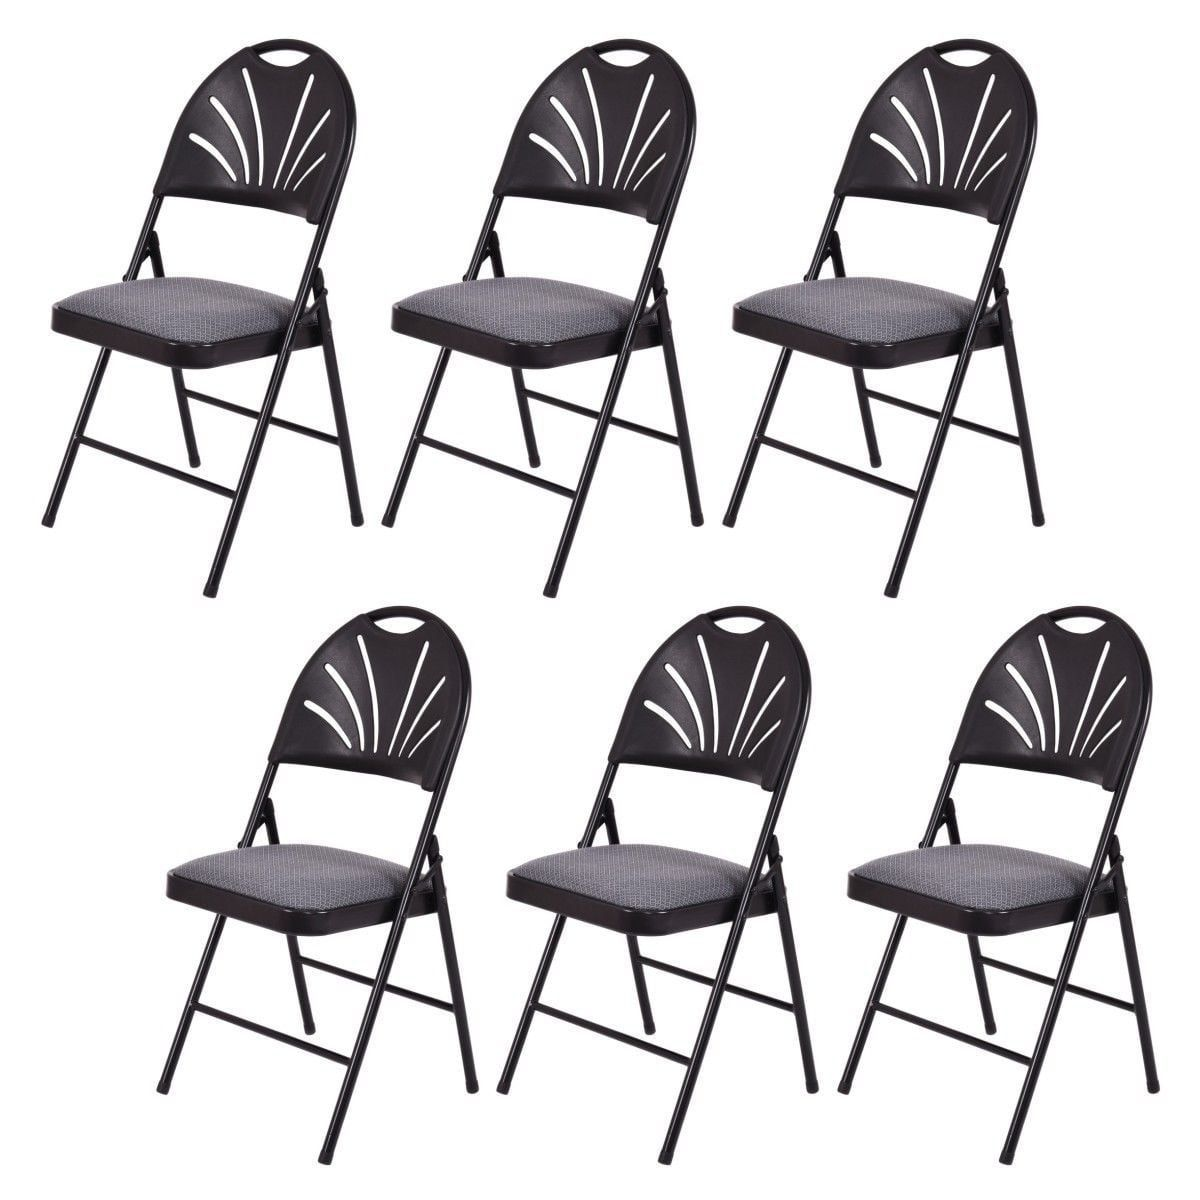 Costway Set of 6 Folding Chairs Fabric Padded Seat Plastic